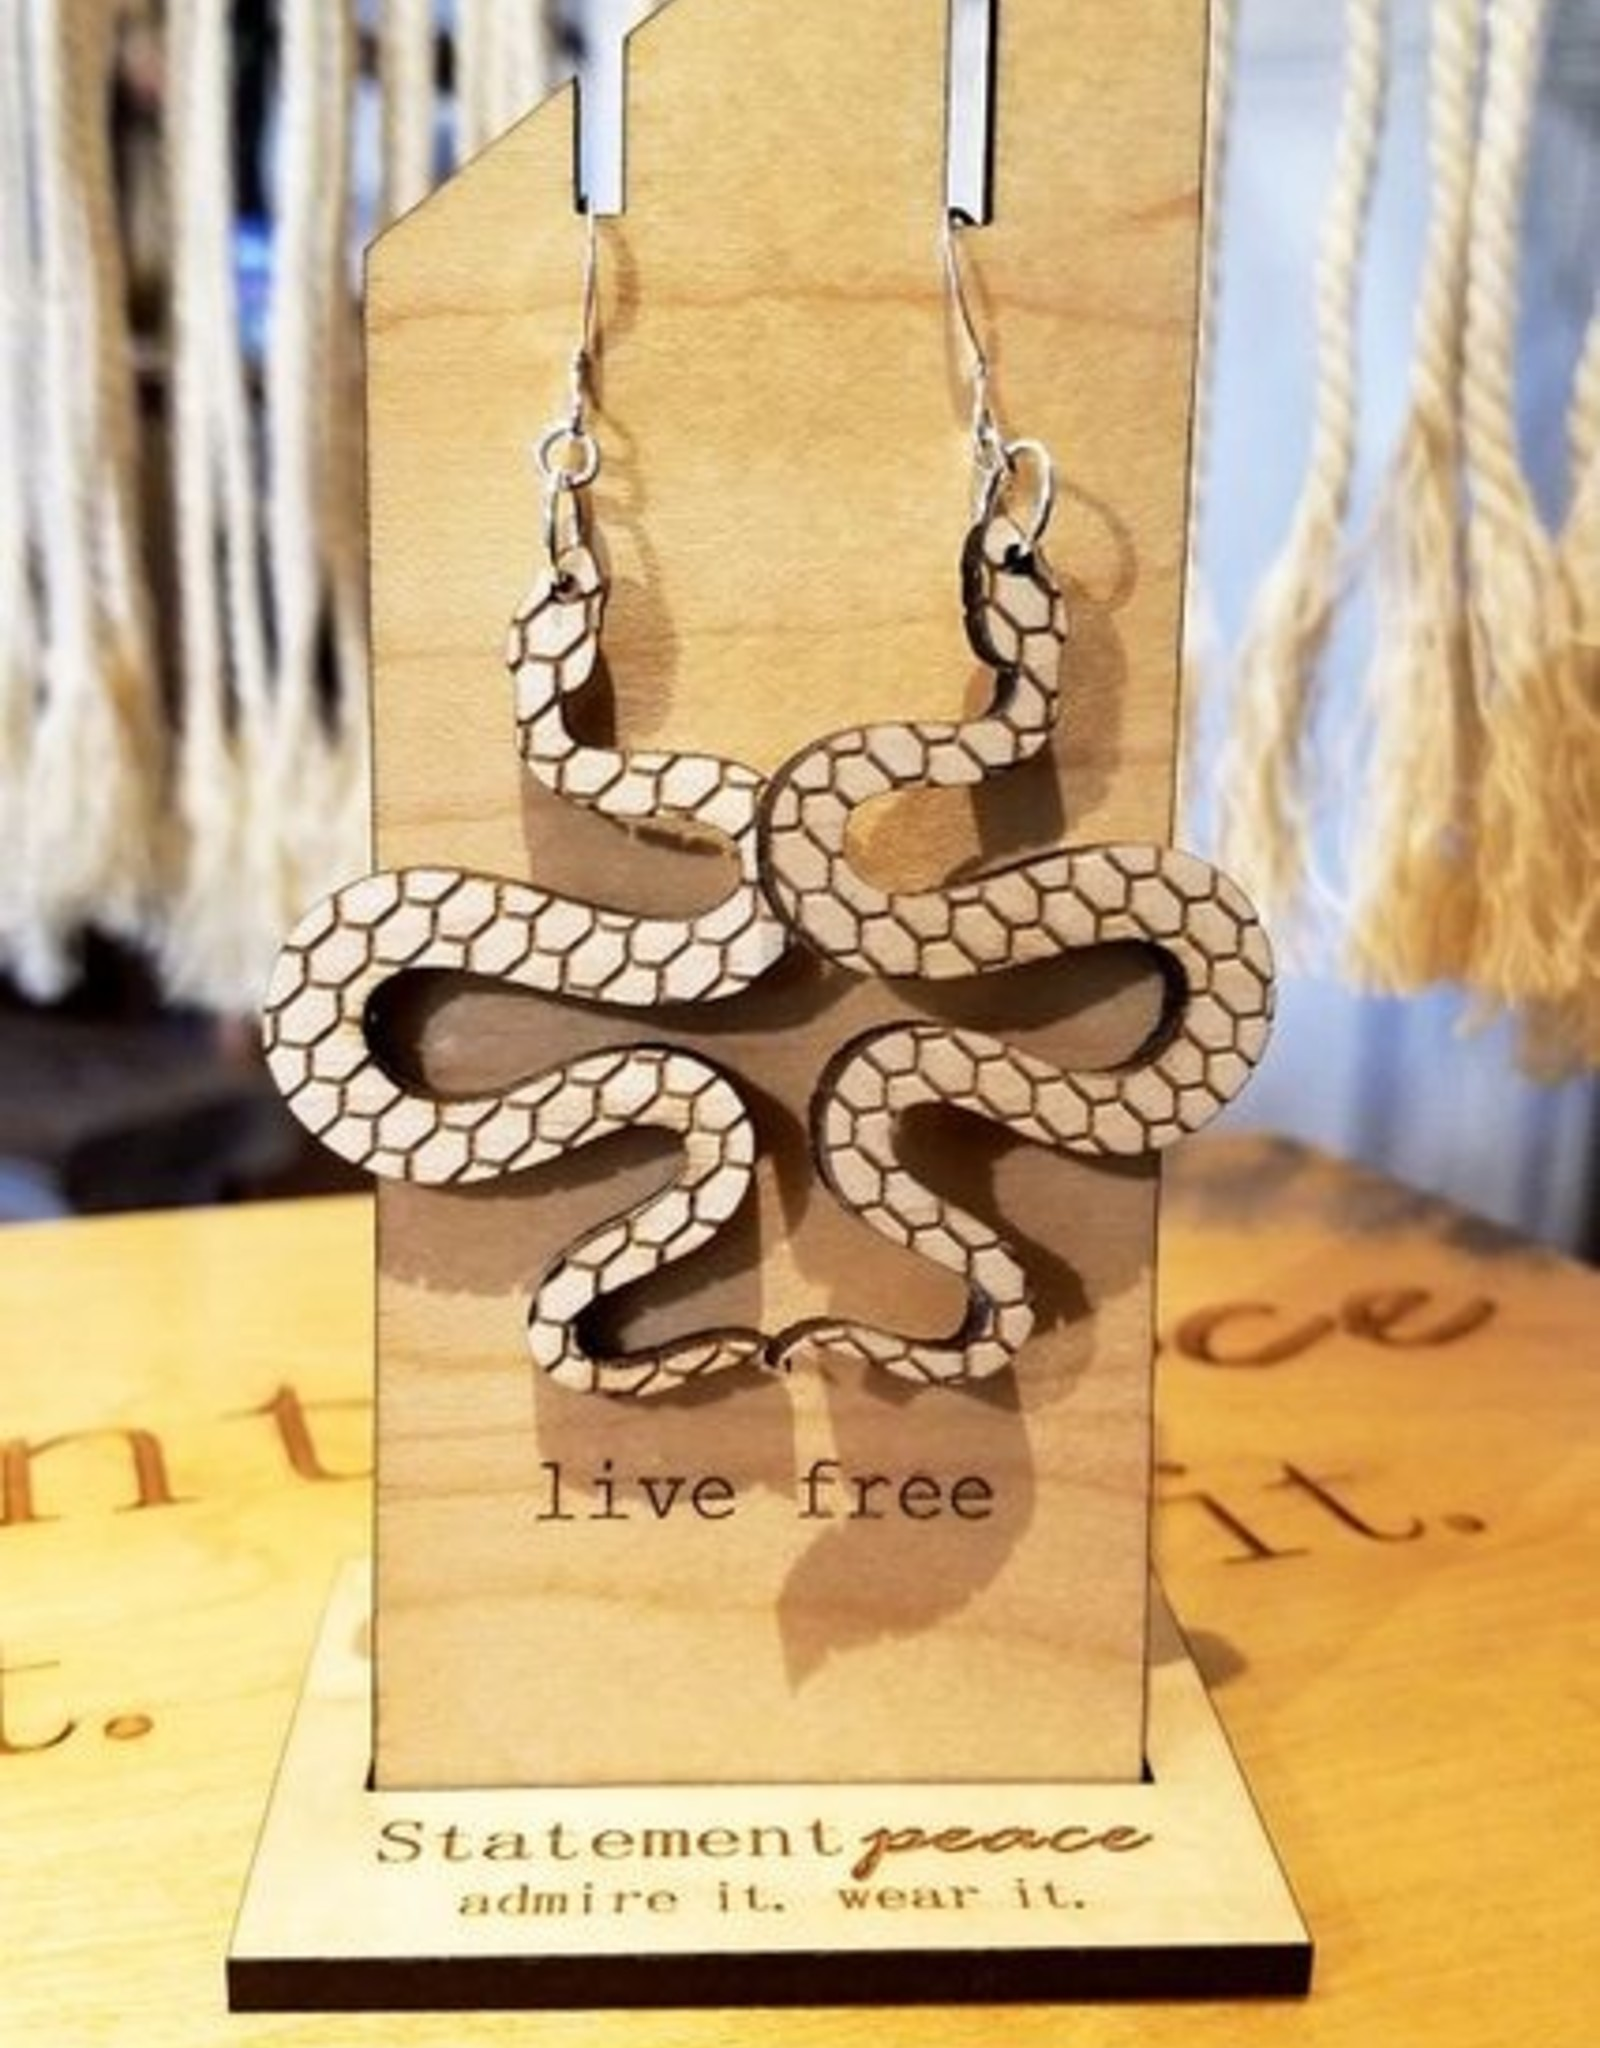 *Statement Peace Snakes Earrings